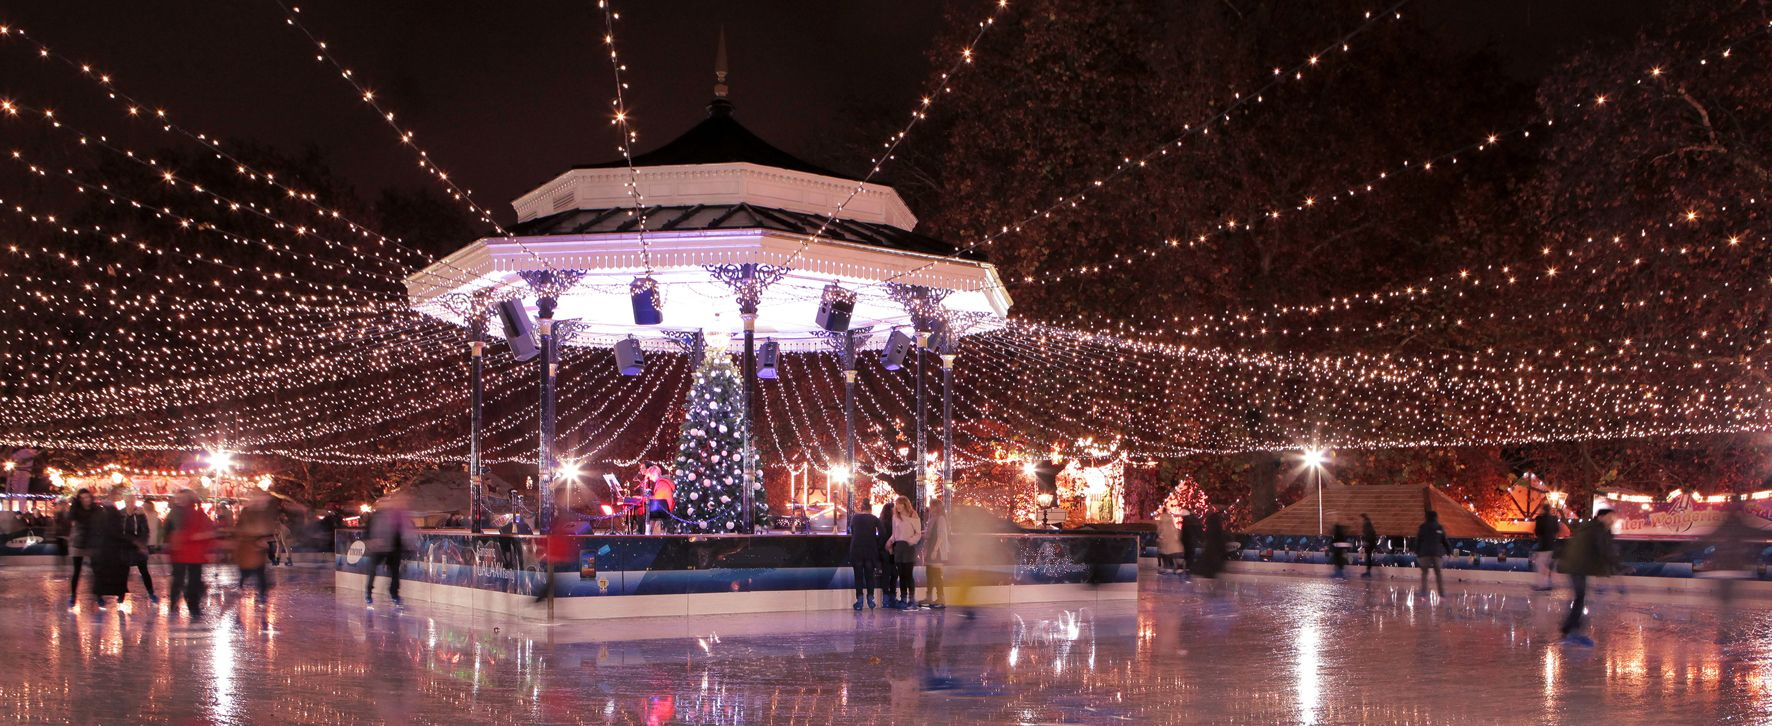 Christmas Ice Skating London.Hyde Park Ice Skating Rink London Anglophile Part 1